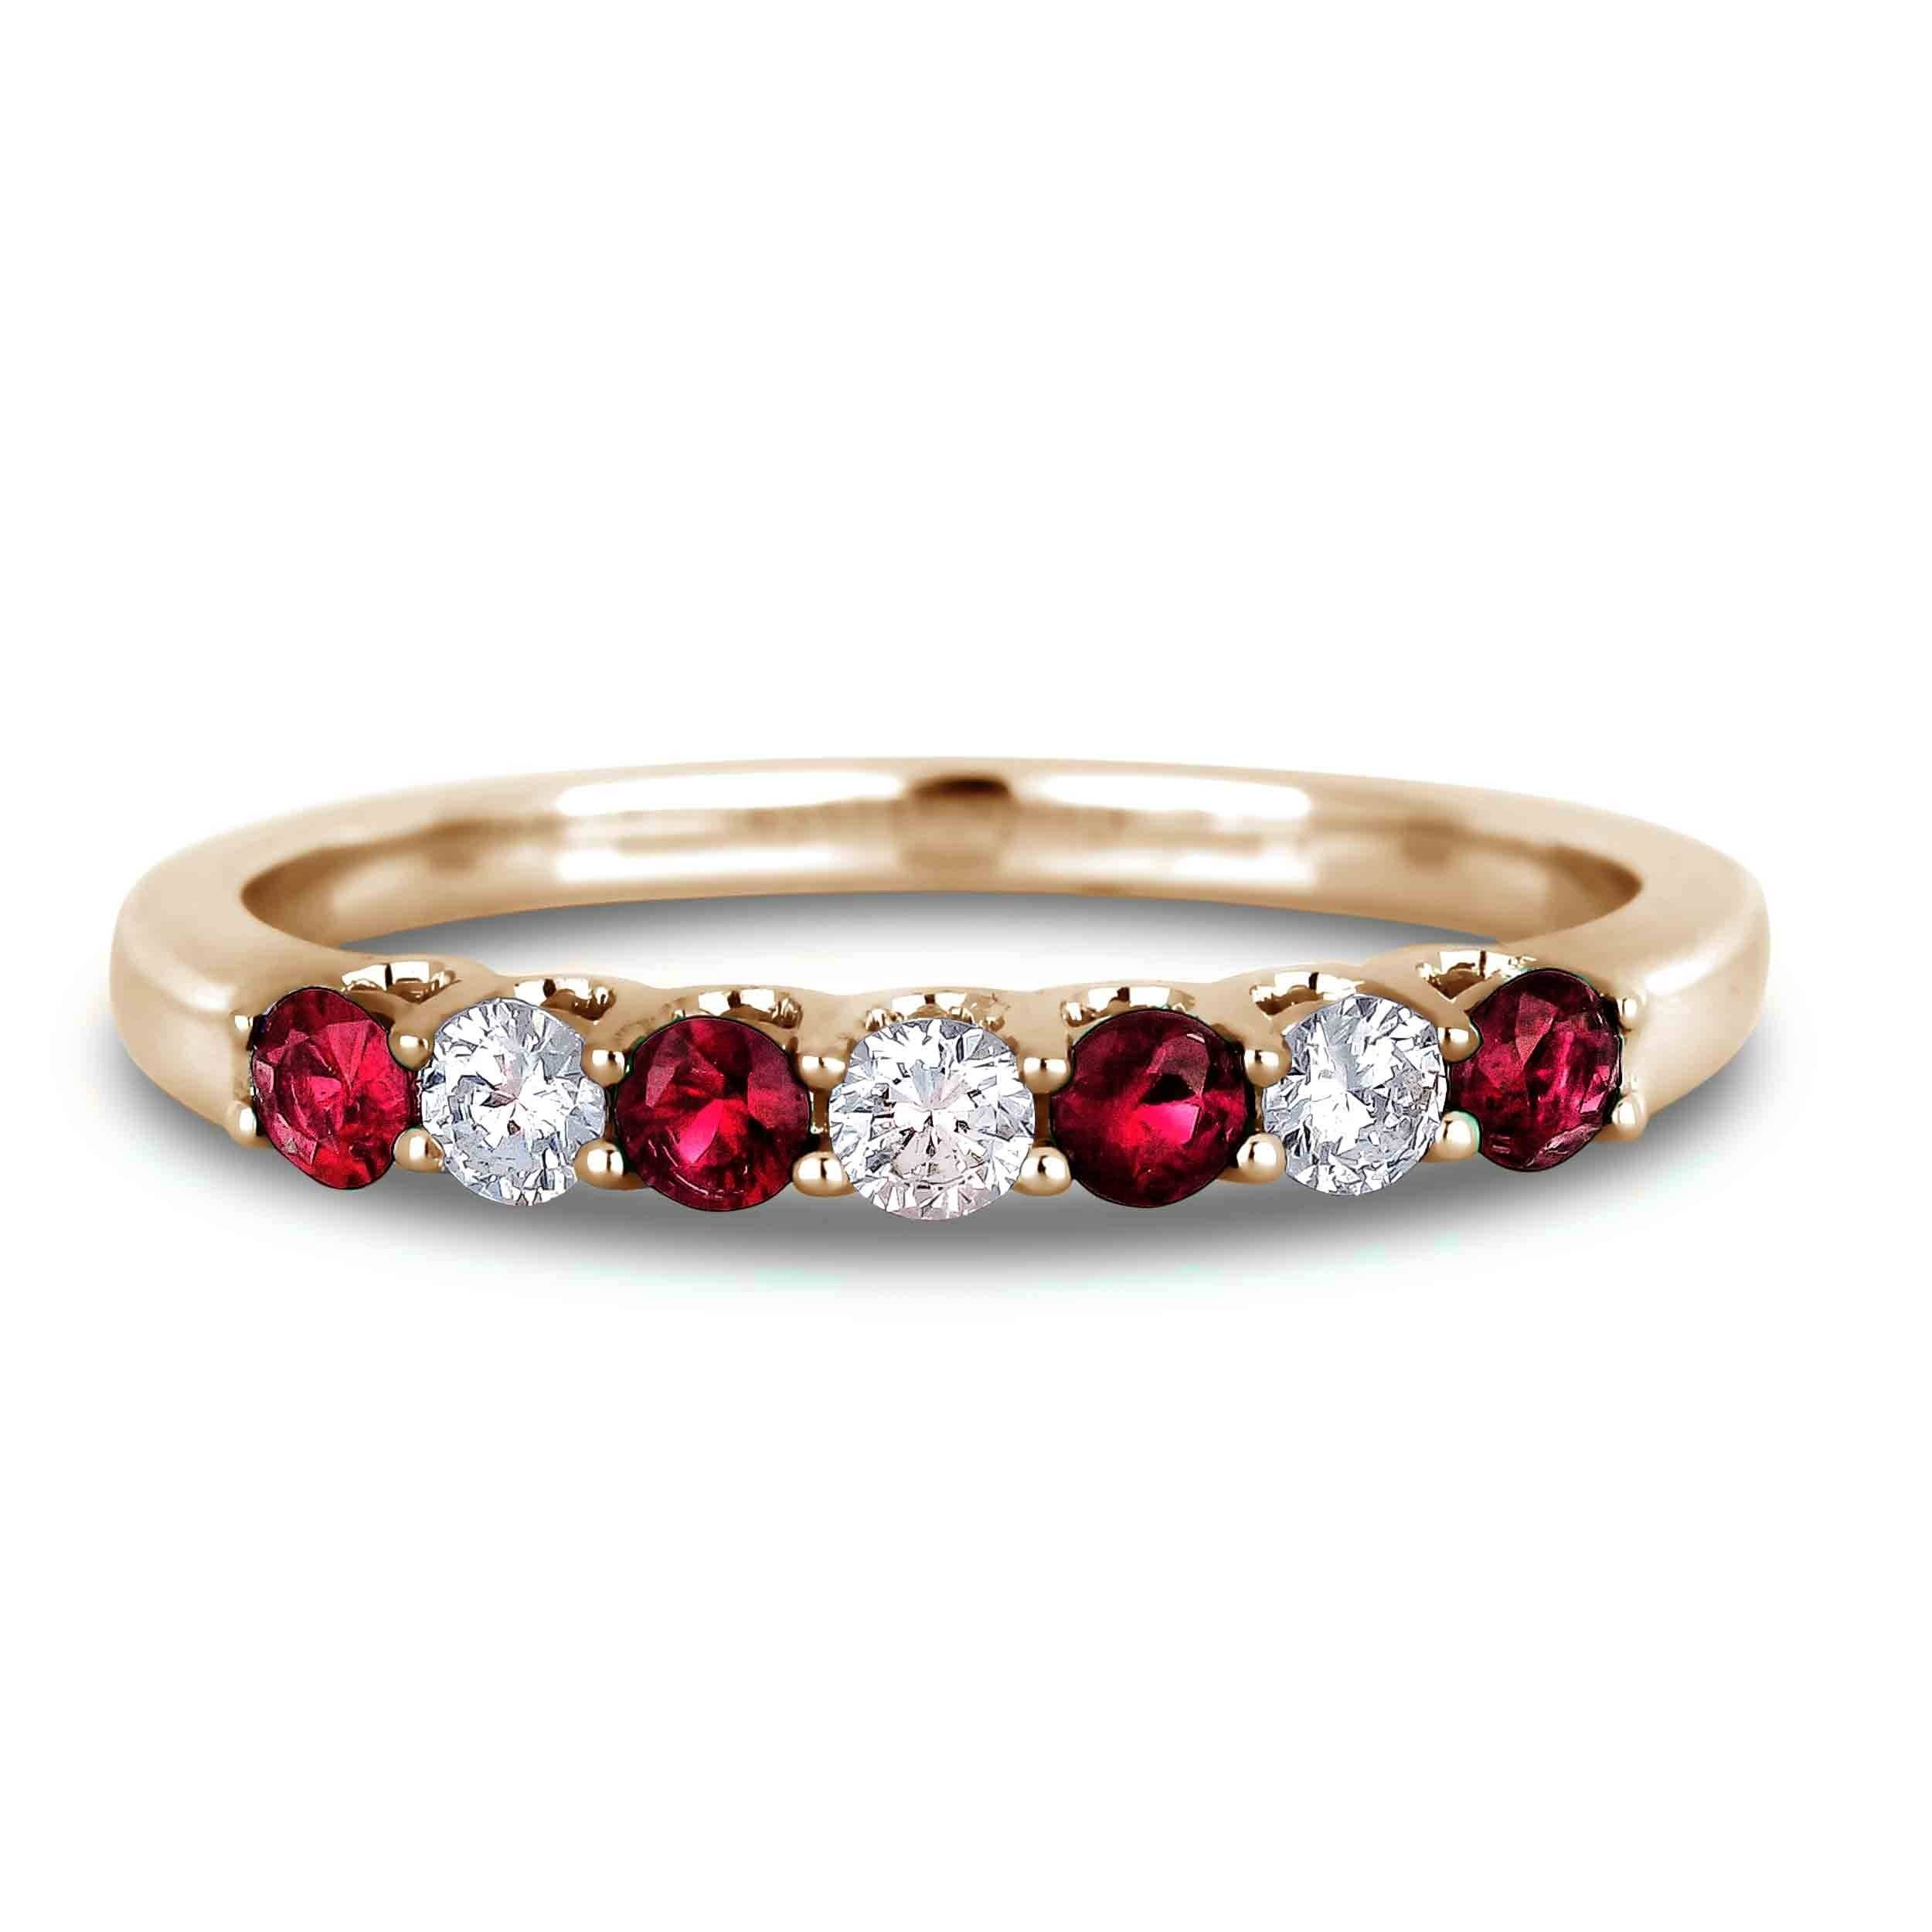 Lugaro | Ruby And Diamond Anniversary Band With Most Popular Ruby And Diamond Anniversary Rings (View 13 of 25)